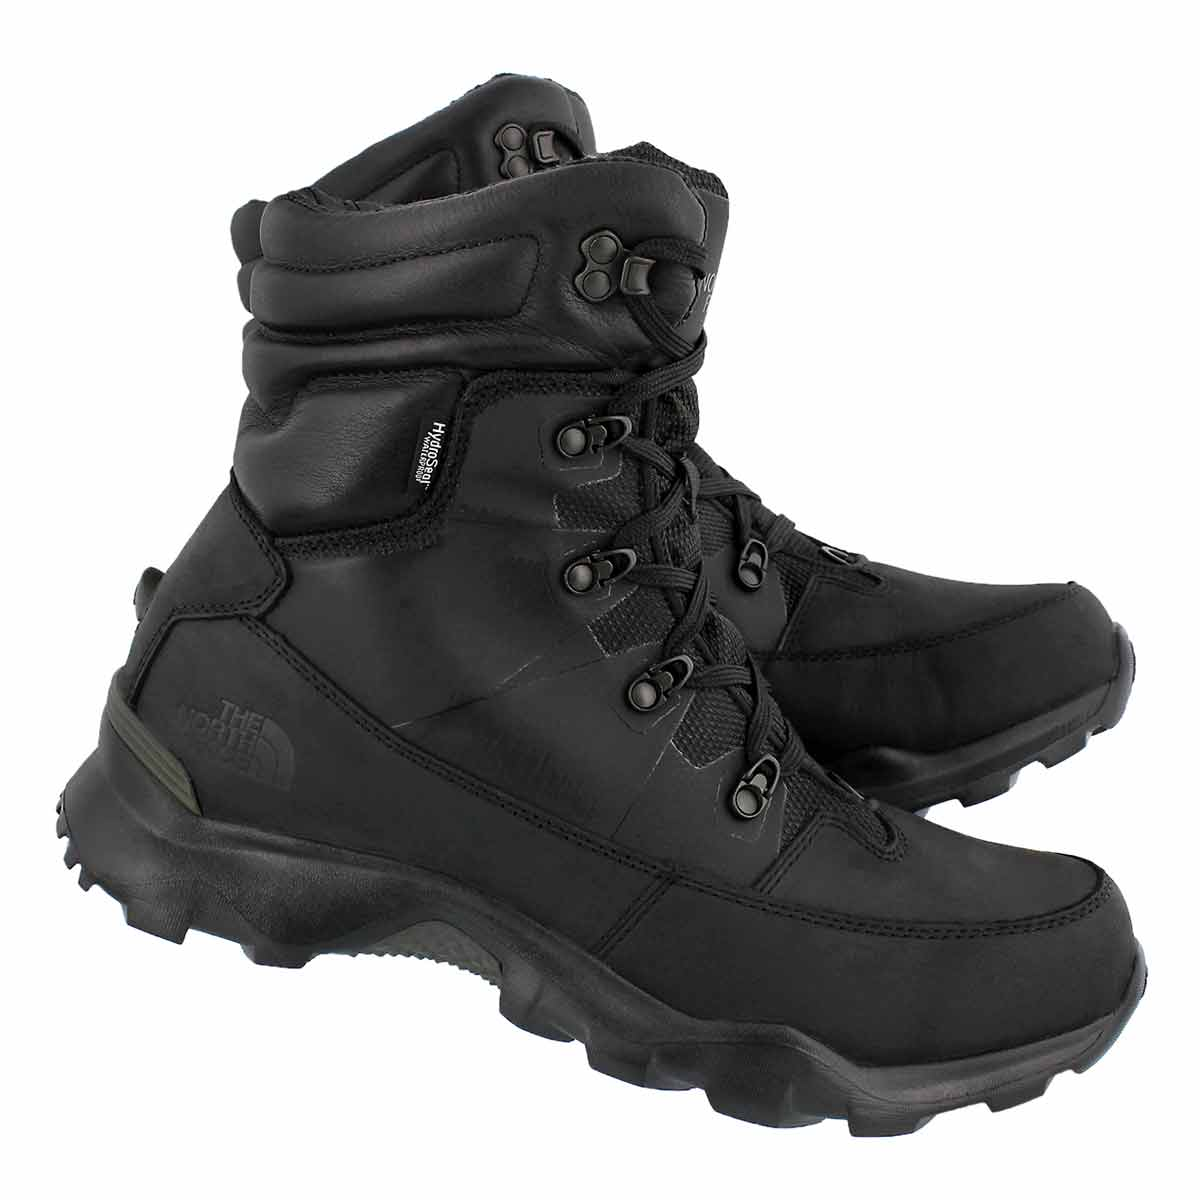 Mns ThermoBall Lifty blk/gry wntr boot